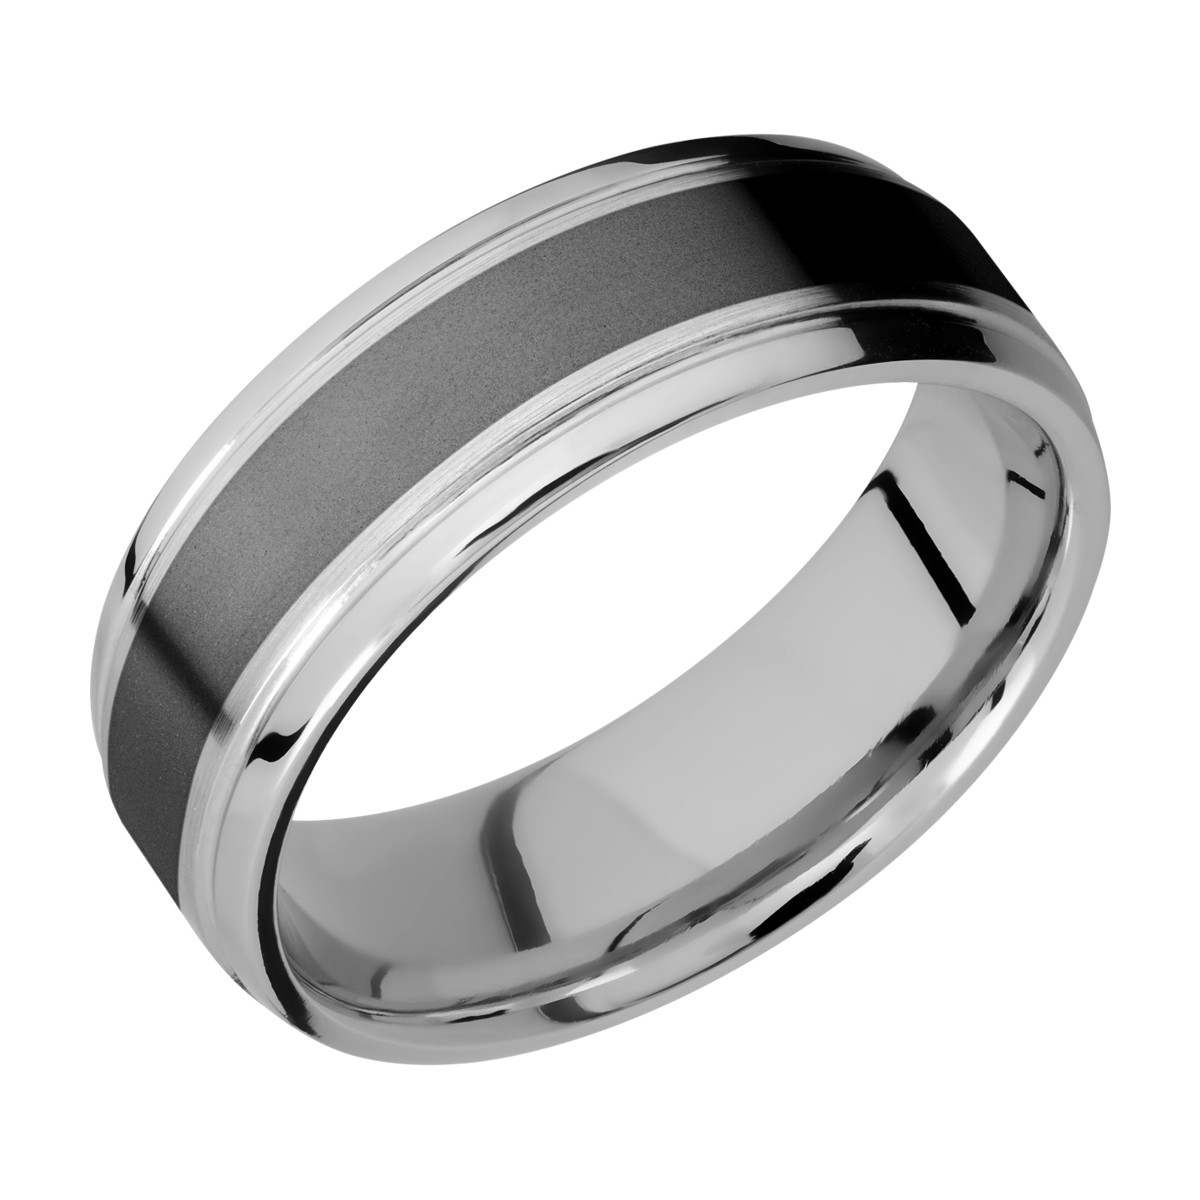 Lashbrook PF7B14(S)/ZIRCONIUM Titanium Wedding Ring or Band